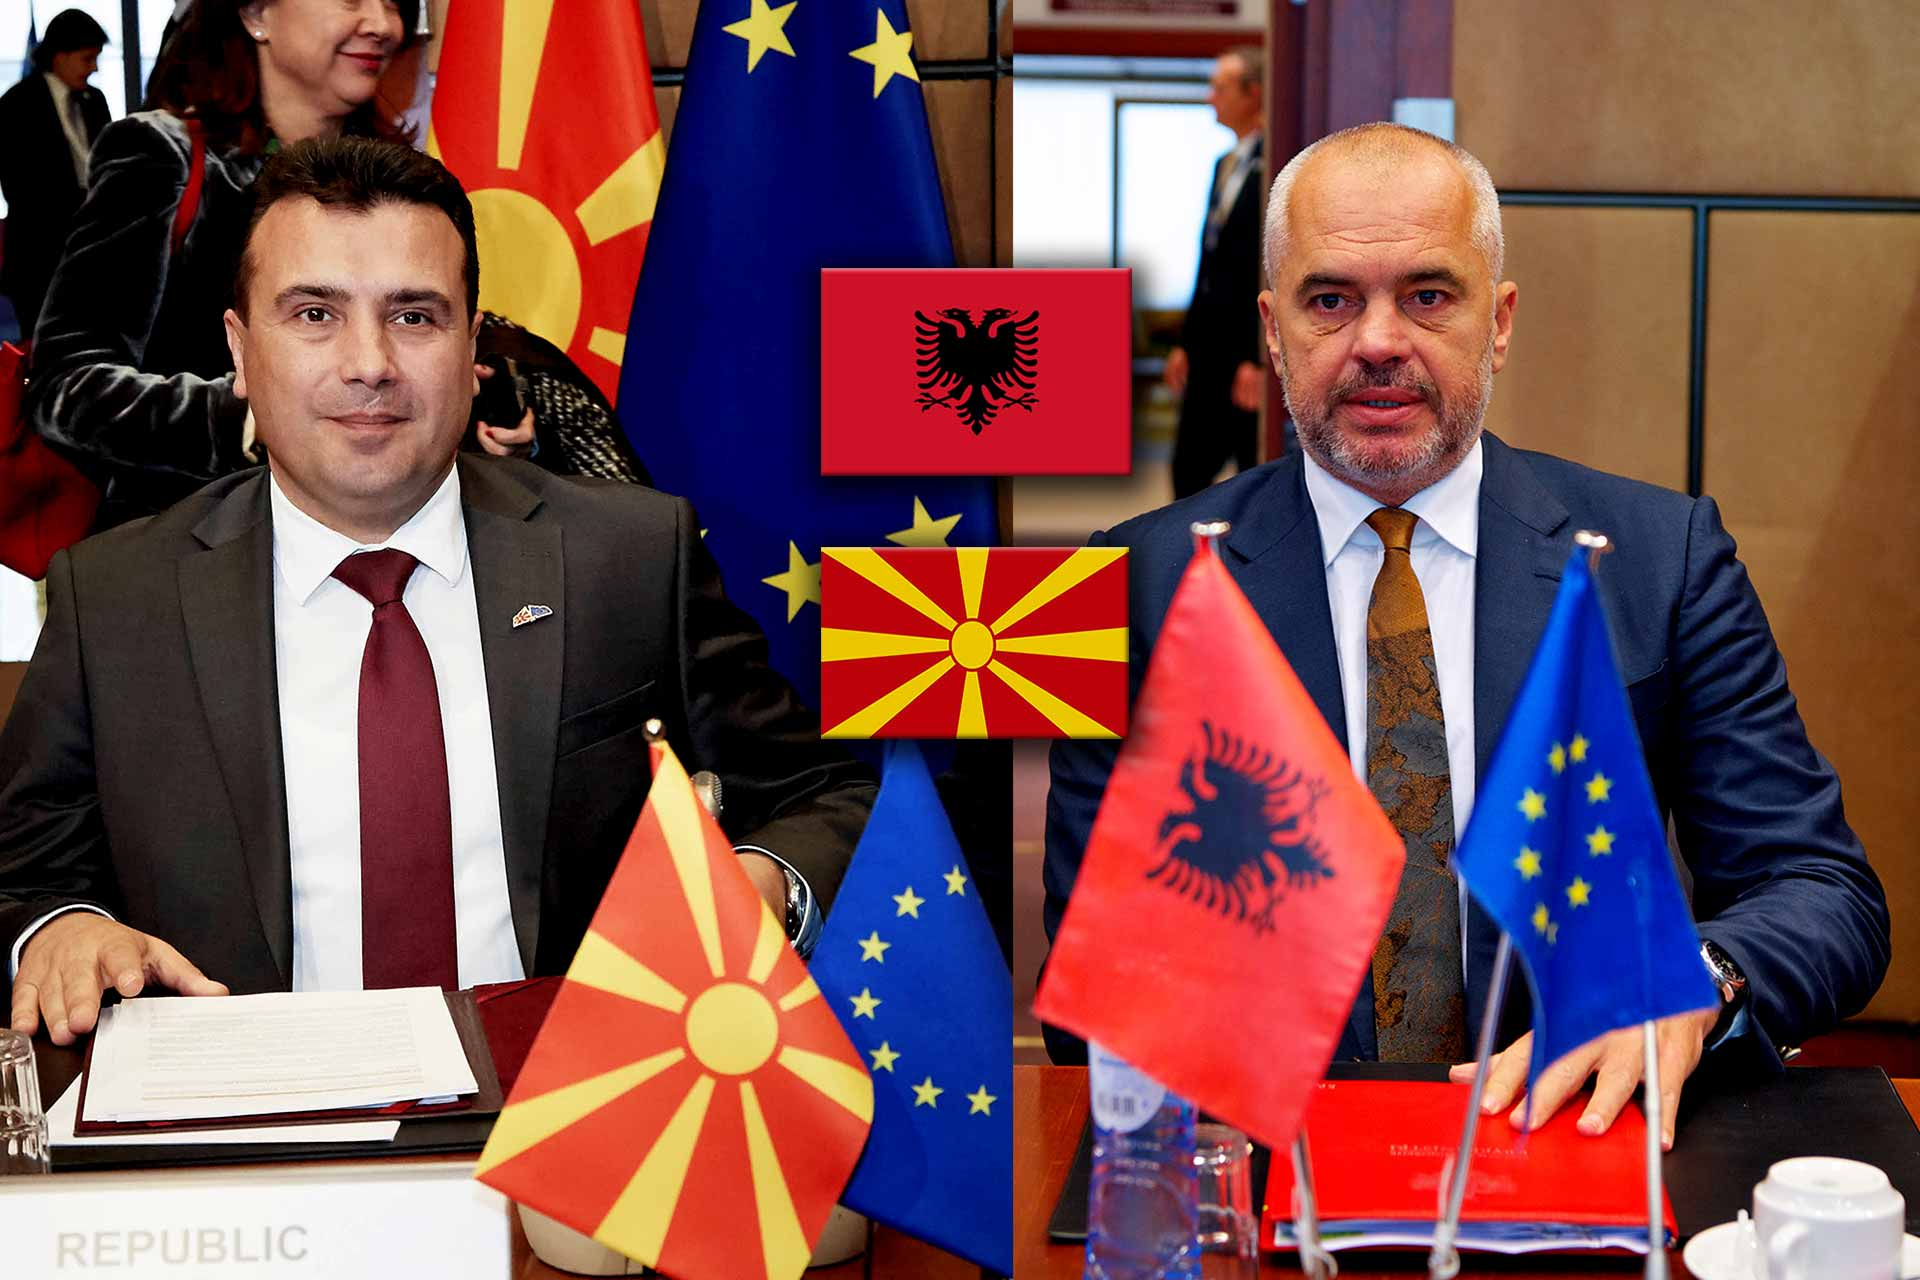 Albania and North Macedonia